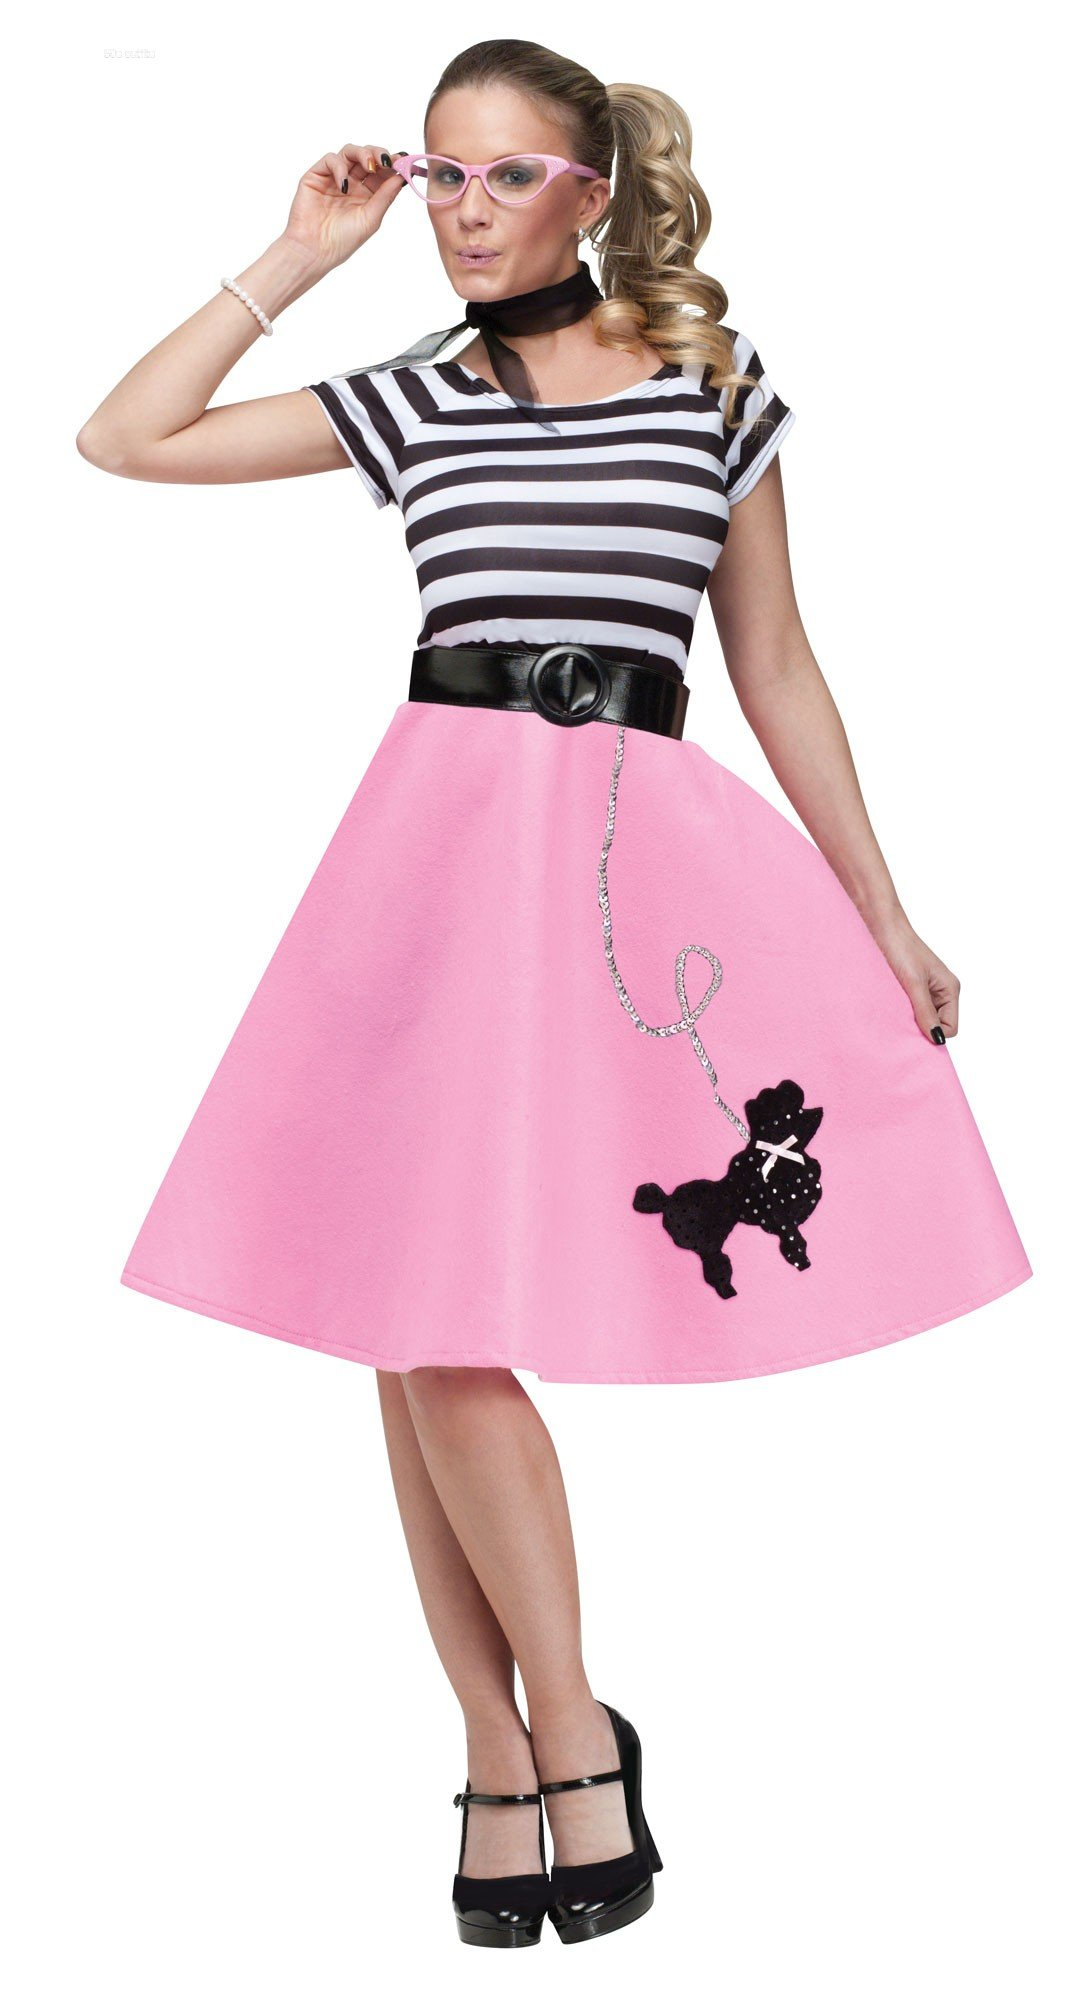 50s Soda Shop Sweetie   The Best 50 S 60 S 70 S   80 S Costumes And